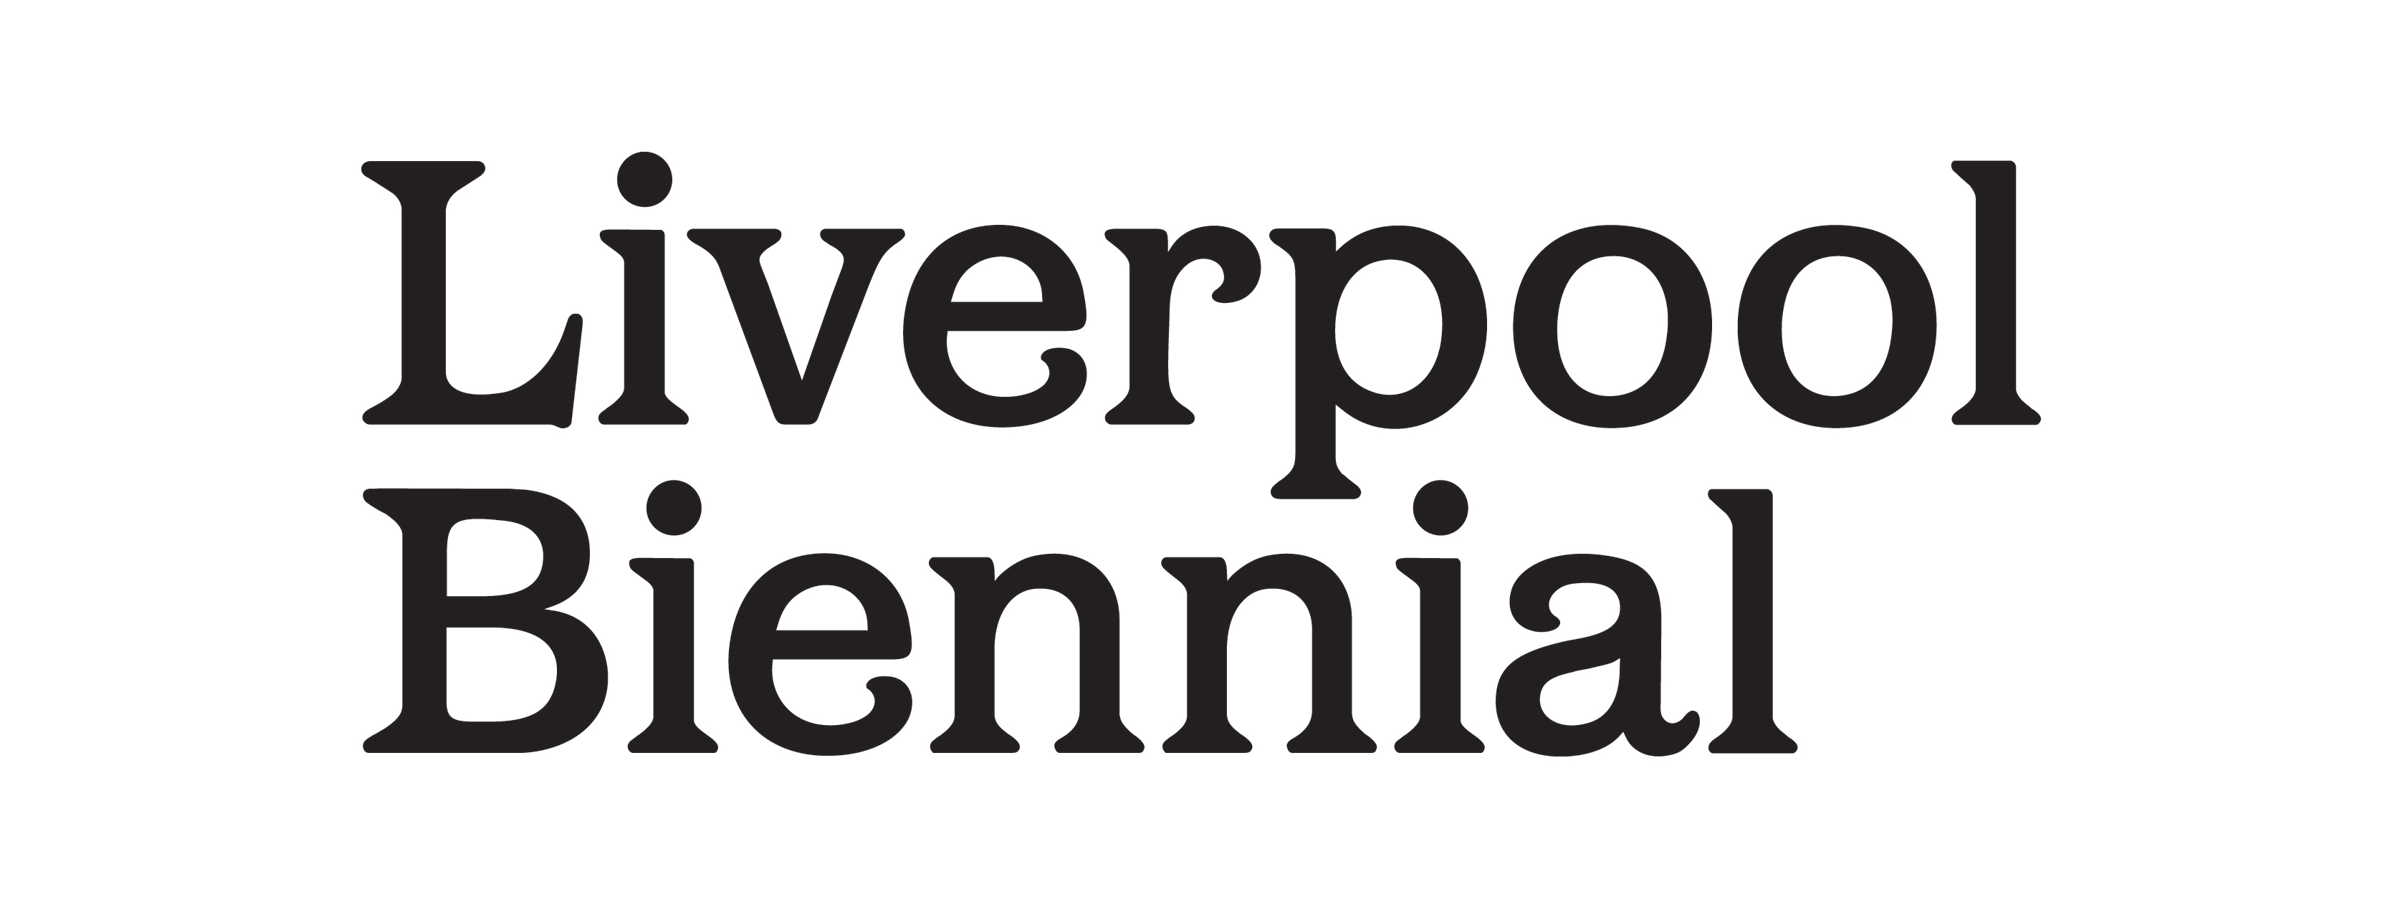 Liverpool Biennial Logo - Art in Motion